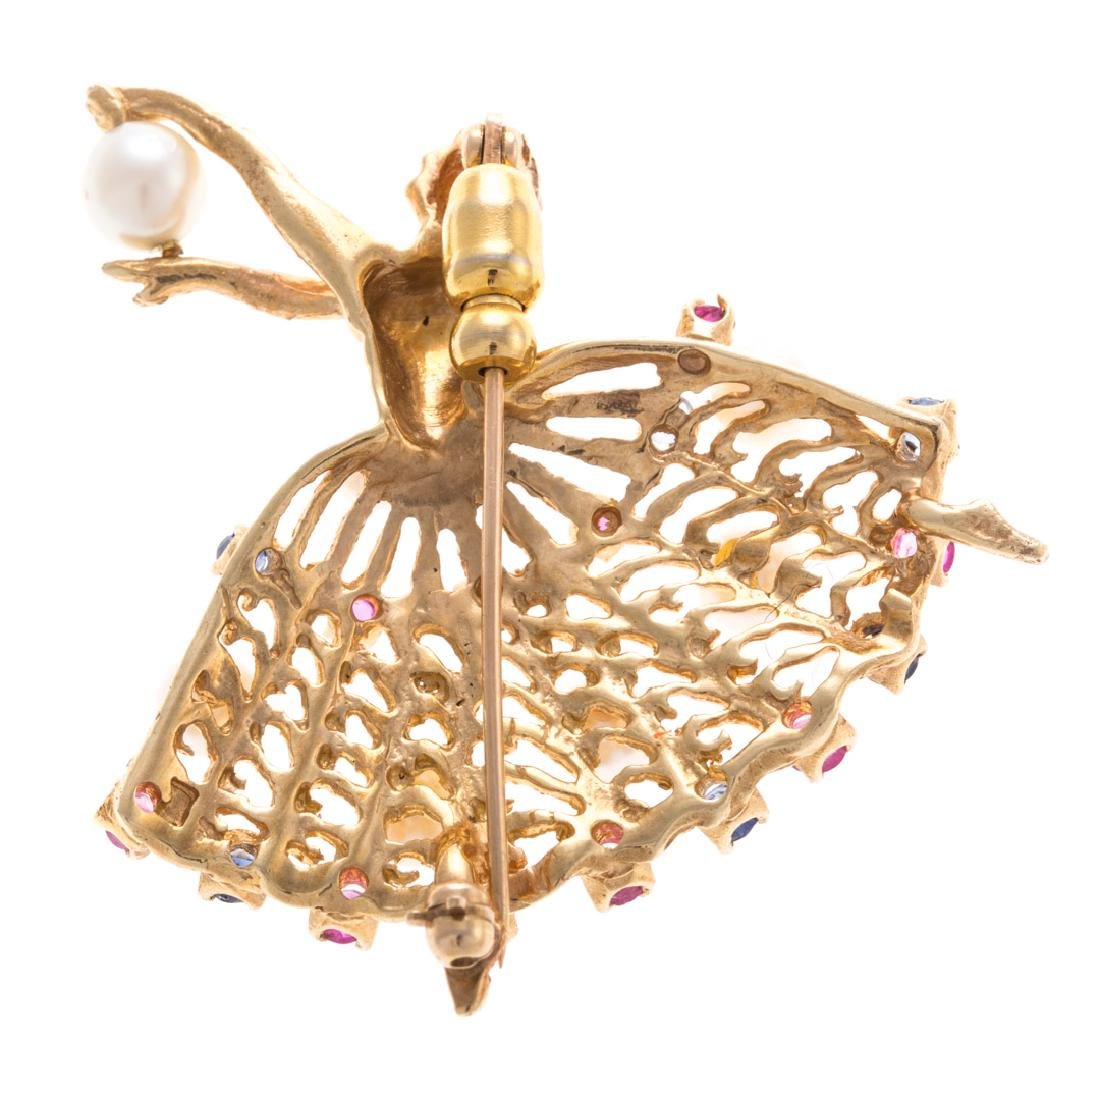 A Lady's 14K Pearl & Gemstone Ballerina Pin - 3